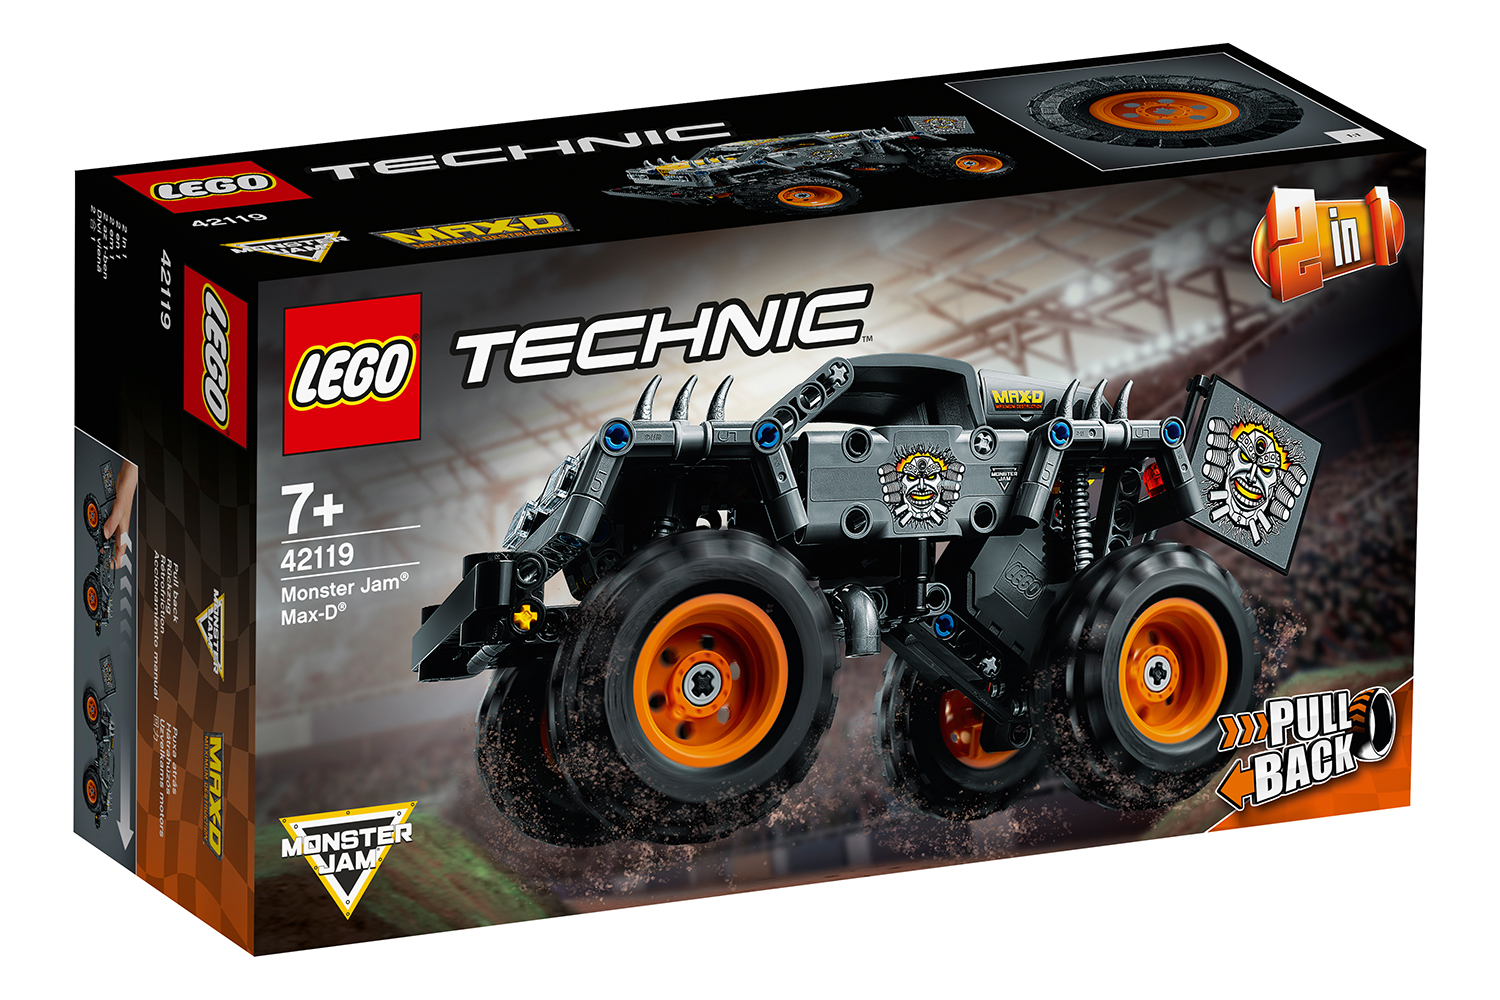 lego-technic-monster-jam-max-d-42119/